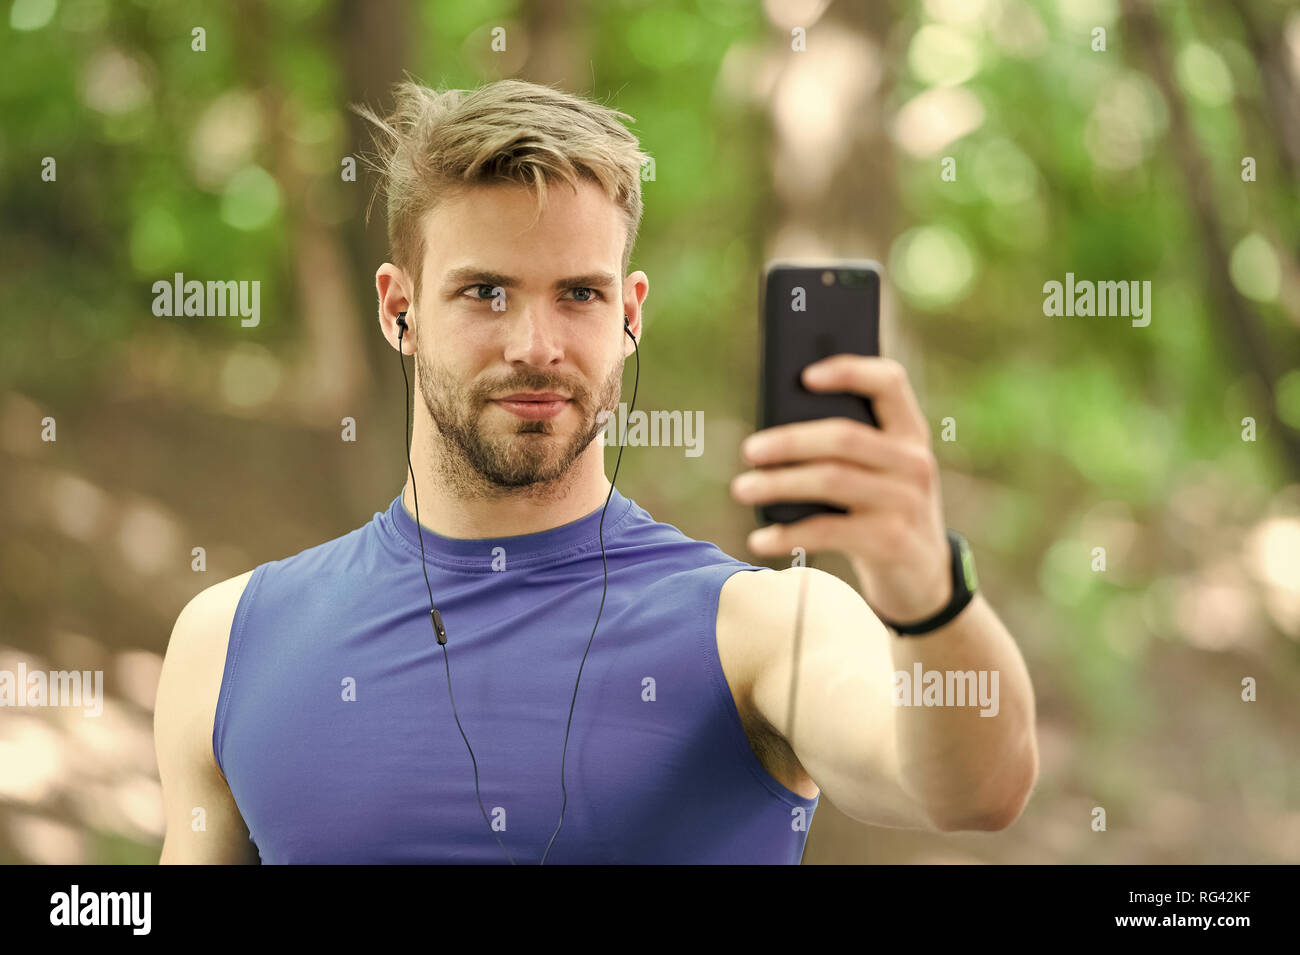 Sport gadget concept. Athlete mobile phone set up playlist before runnig. Man athlete busy face setting up smartphone app, nature background. Sportsman training with pedometer and earphones. - Stock Image